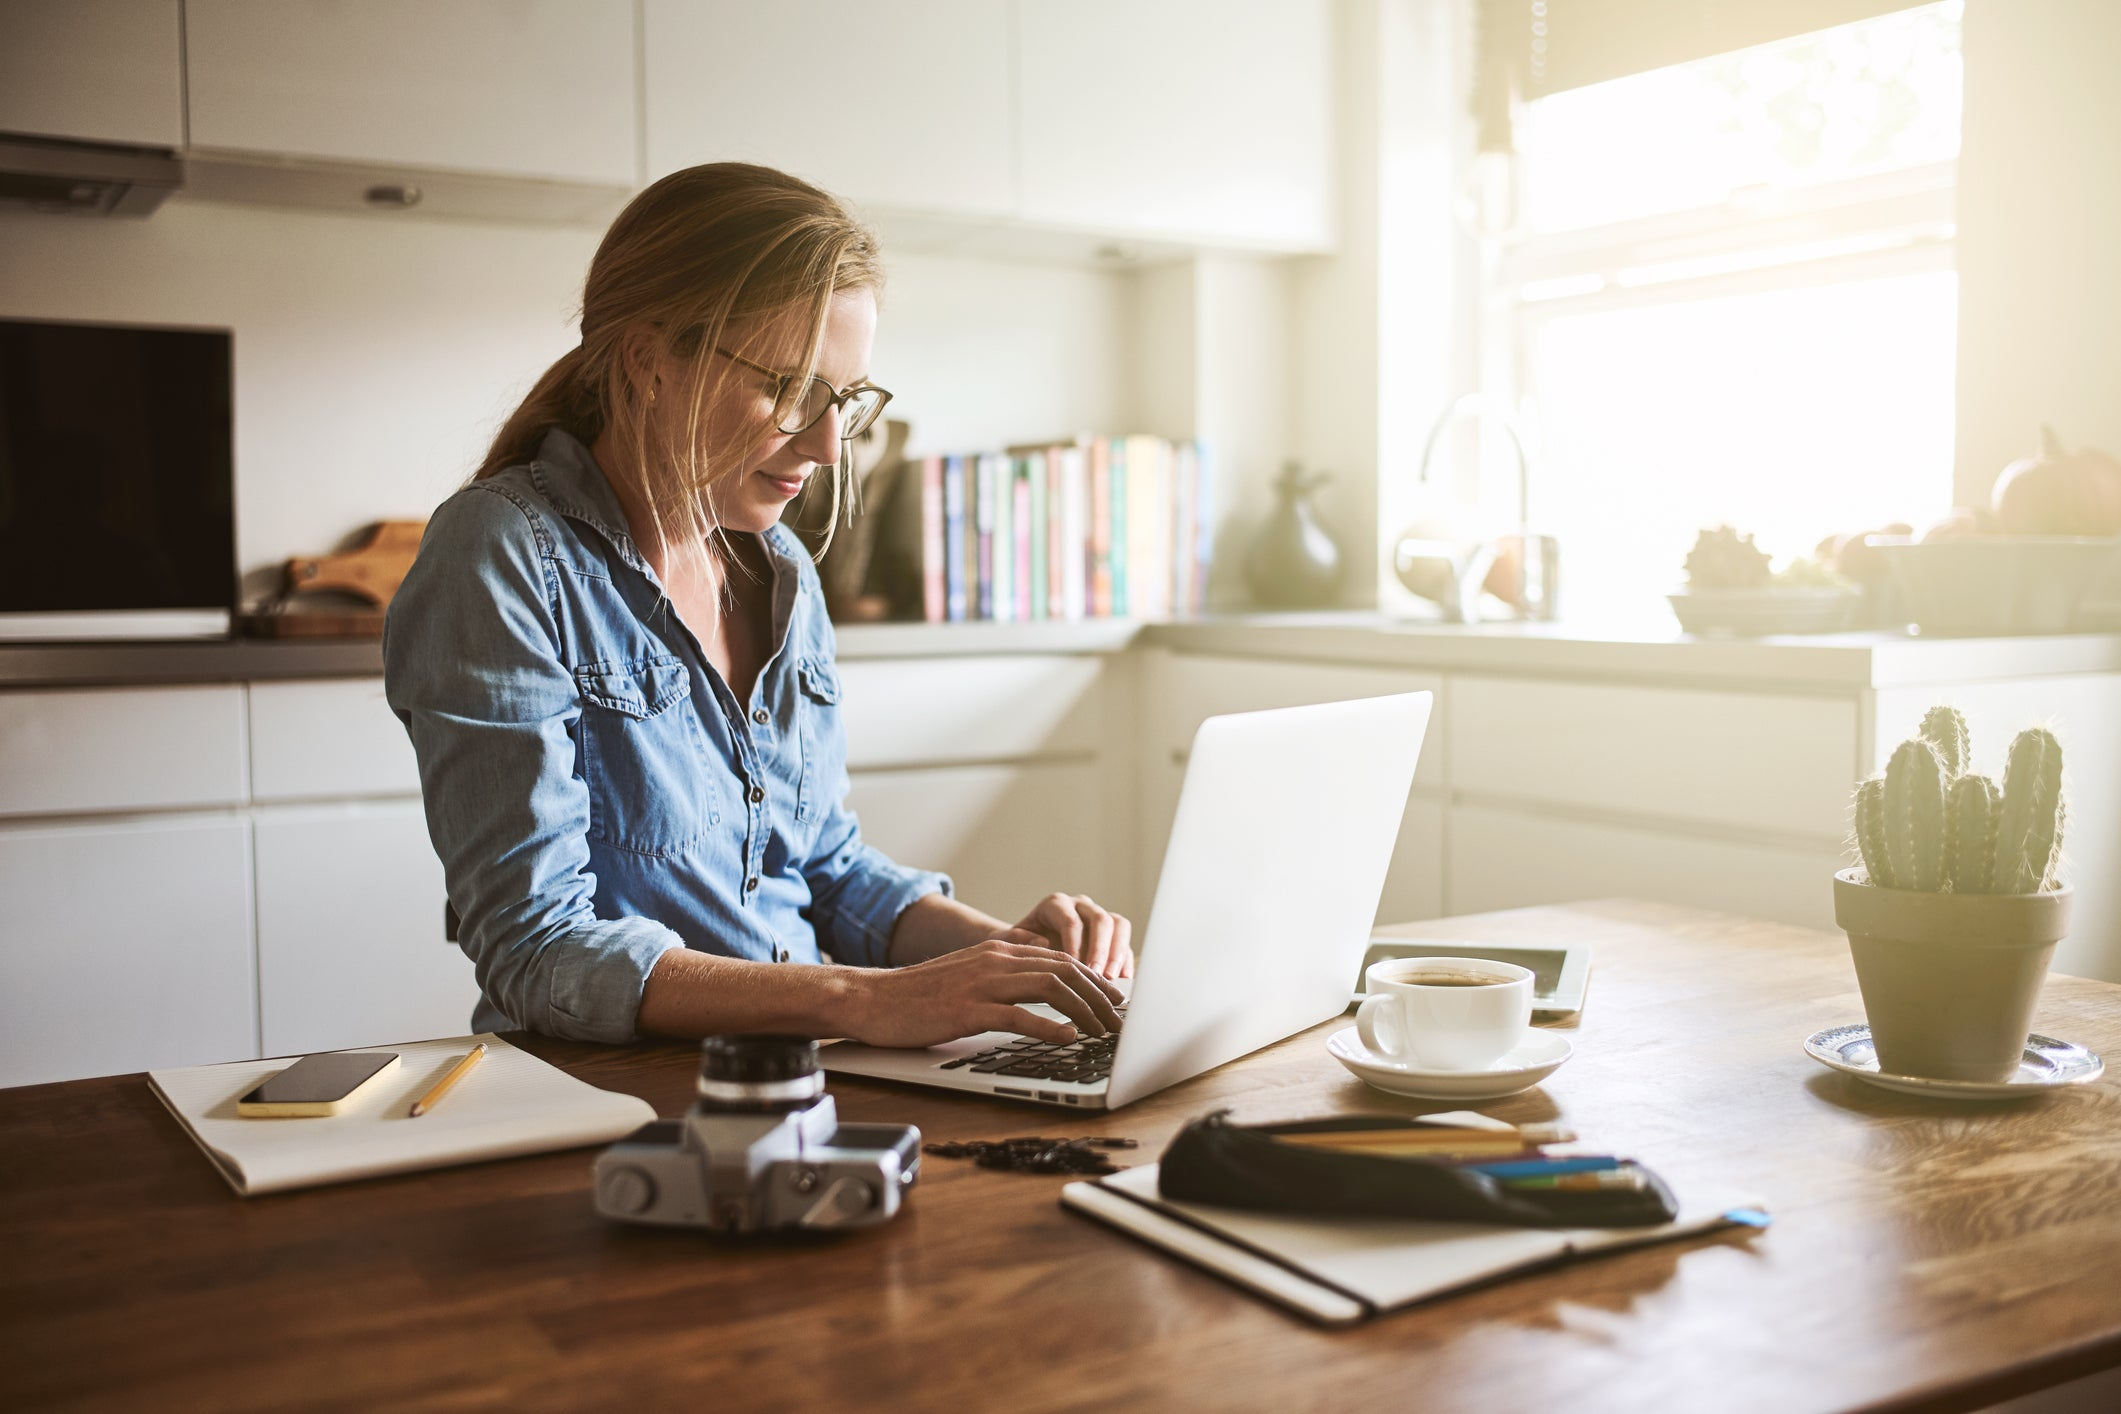 Big Tech Pushes Back Against COVID-19 Work-from-Home Policies